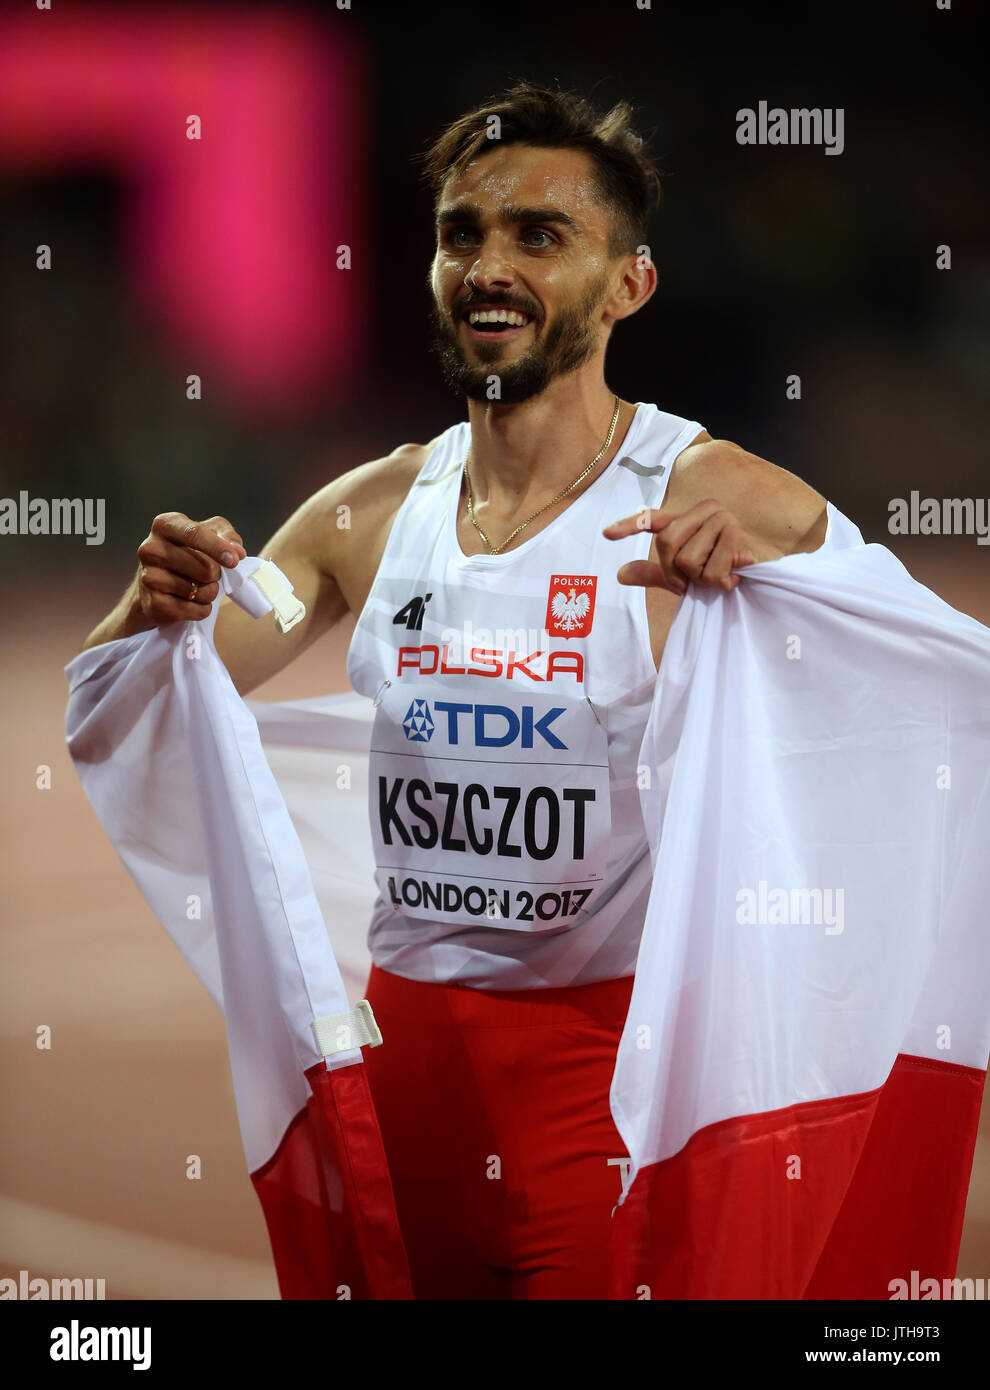 Adam Kszczot 800 Metrs Final World Athletics Championships 2017 London Stam, London, England 08 August 2017 Credit: Allstar Picture Library/Alamy Live News Credit: Allstar Picture Library/Alamy Live News - Stock Image